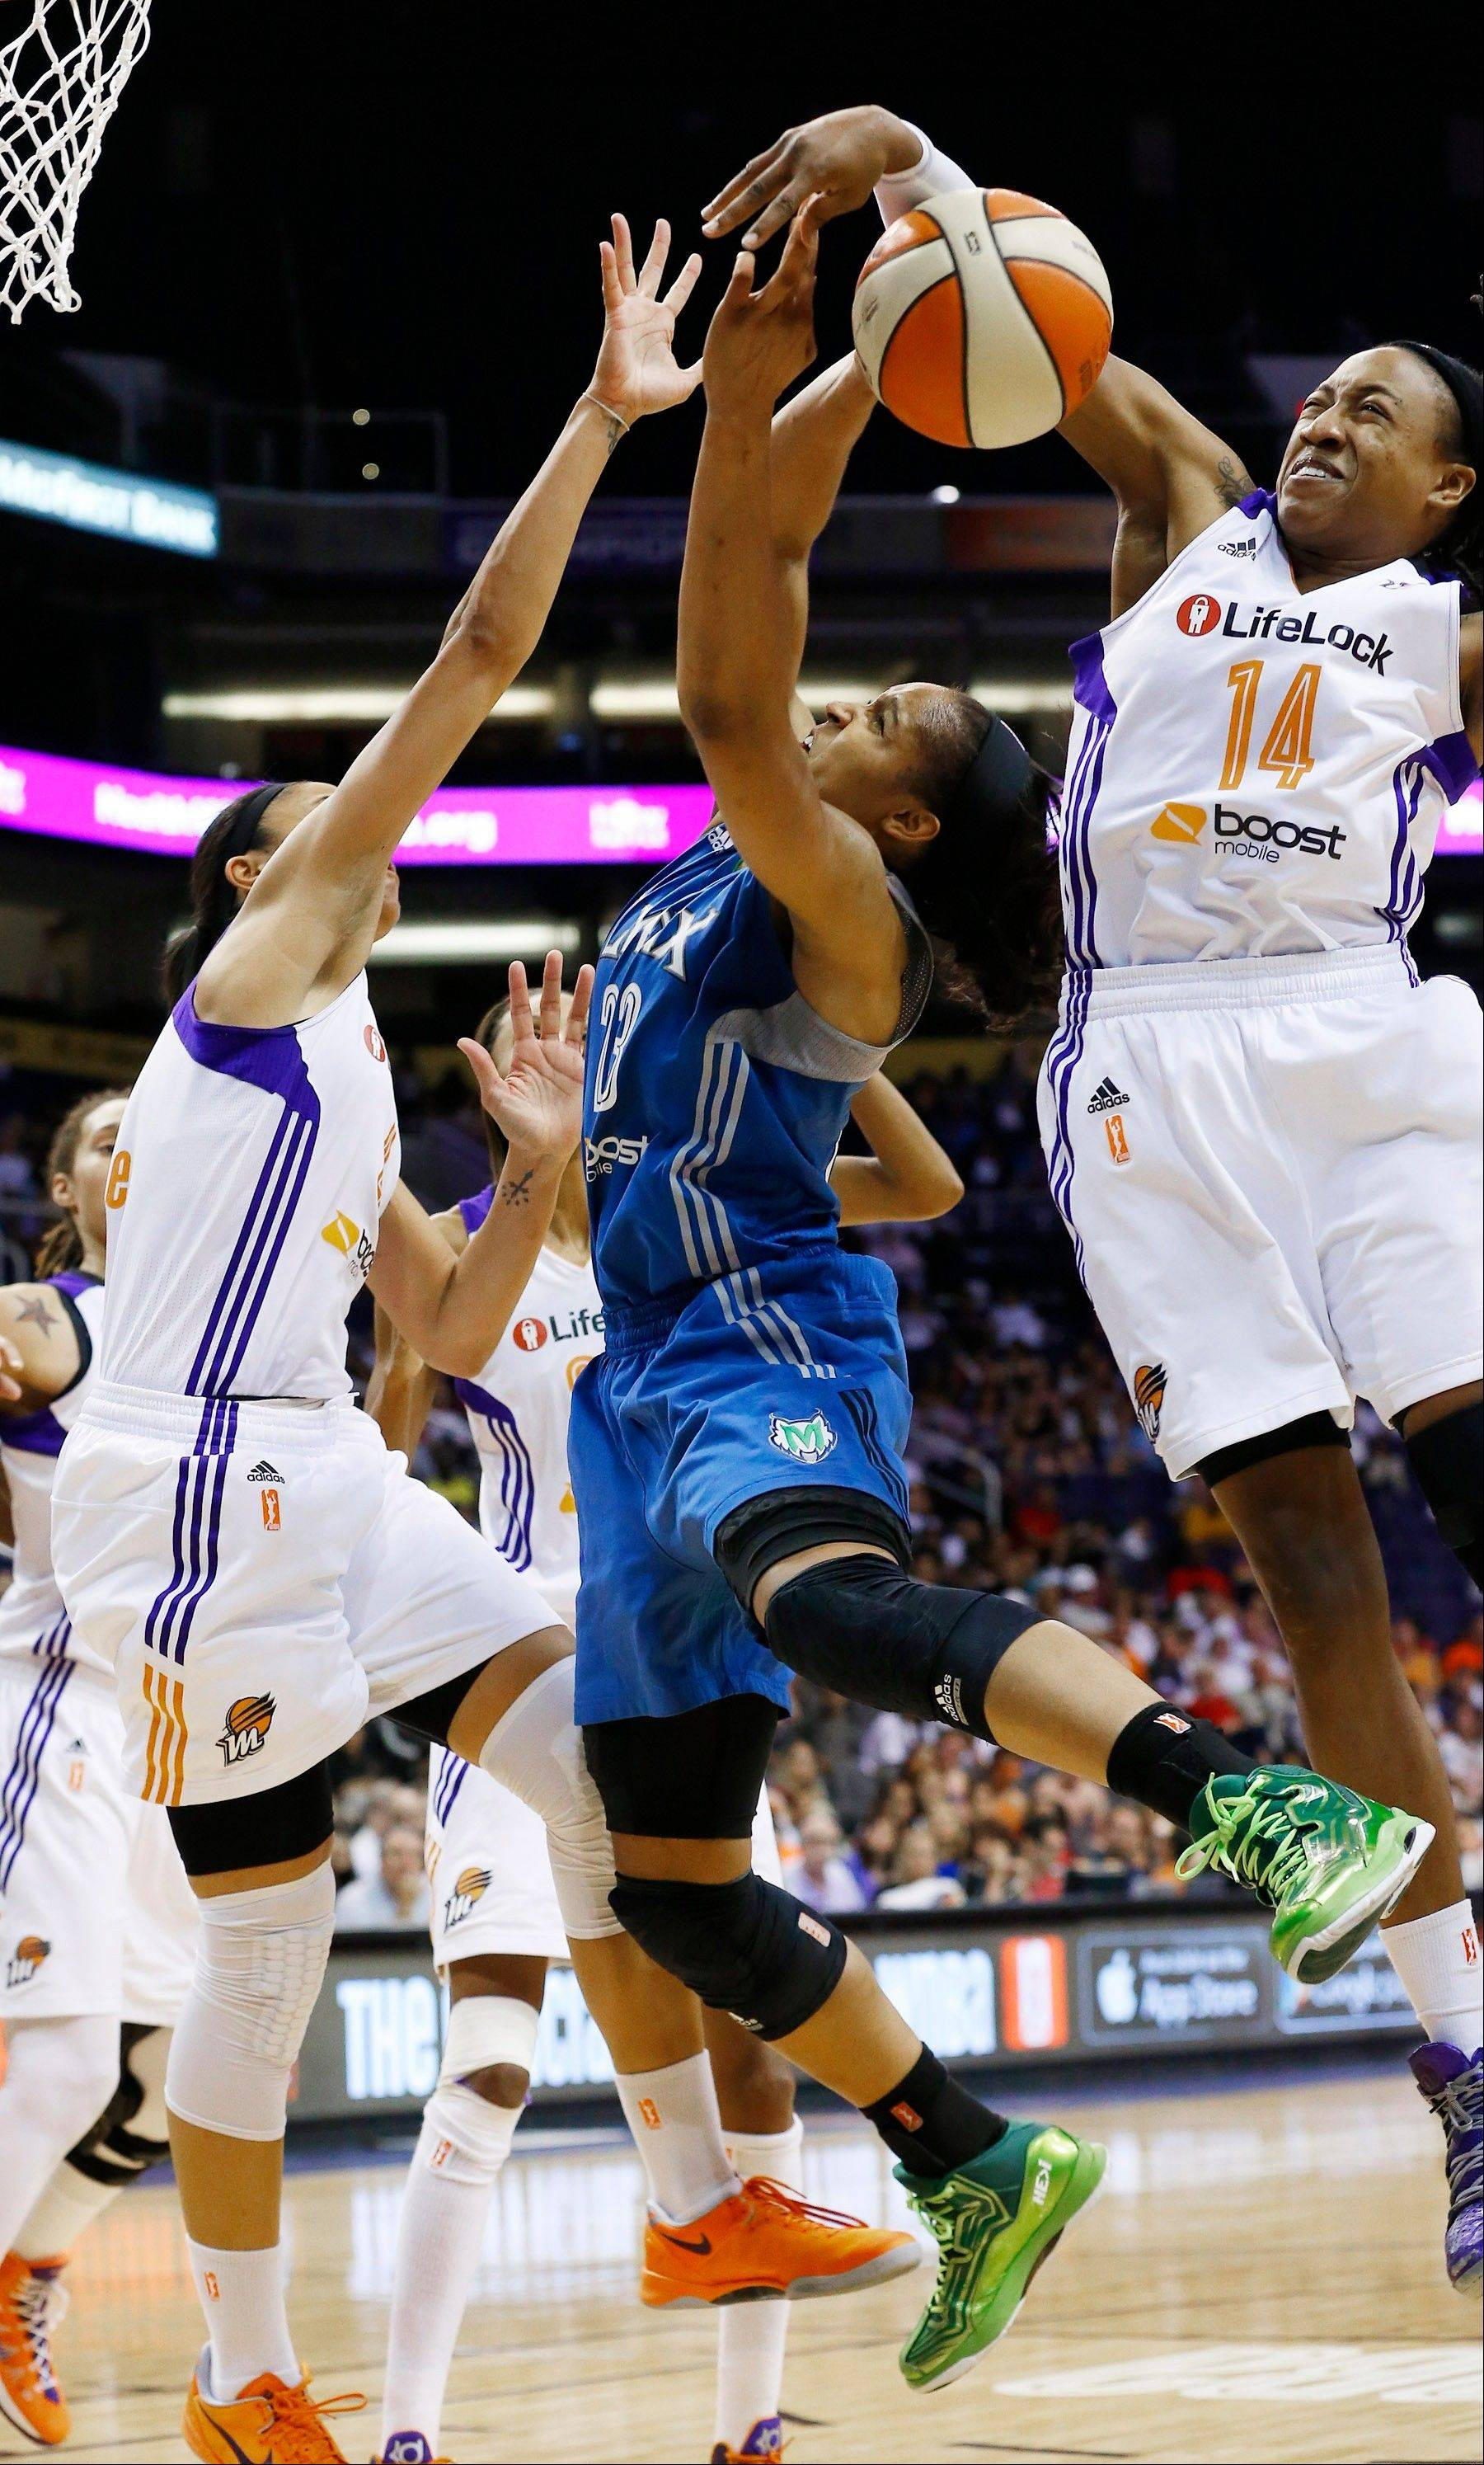 The Minnesota Lynx's Maya Moore, center, is one of the most impressive WNBA players that Patricia Babcock McGraw has seen this season.